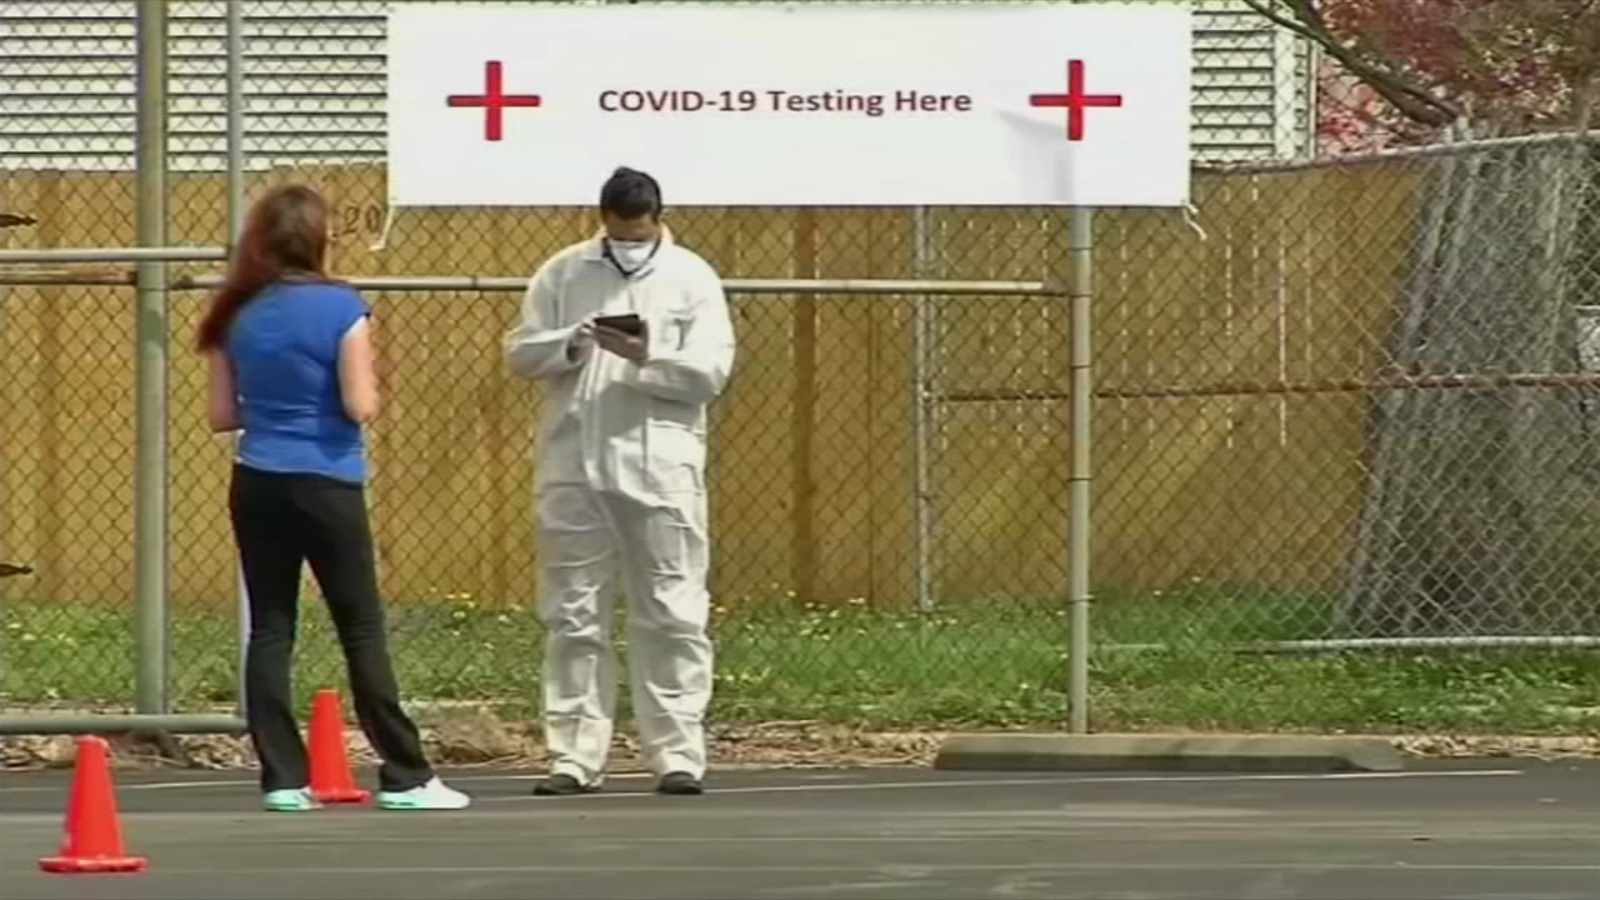 Coronavirus scammers use fake 'pop-up' COVID-19 testing locations ...